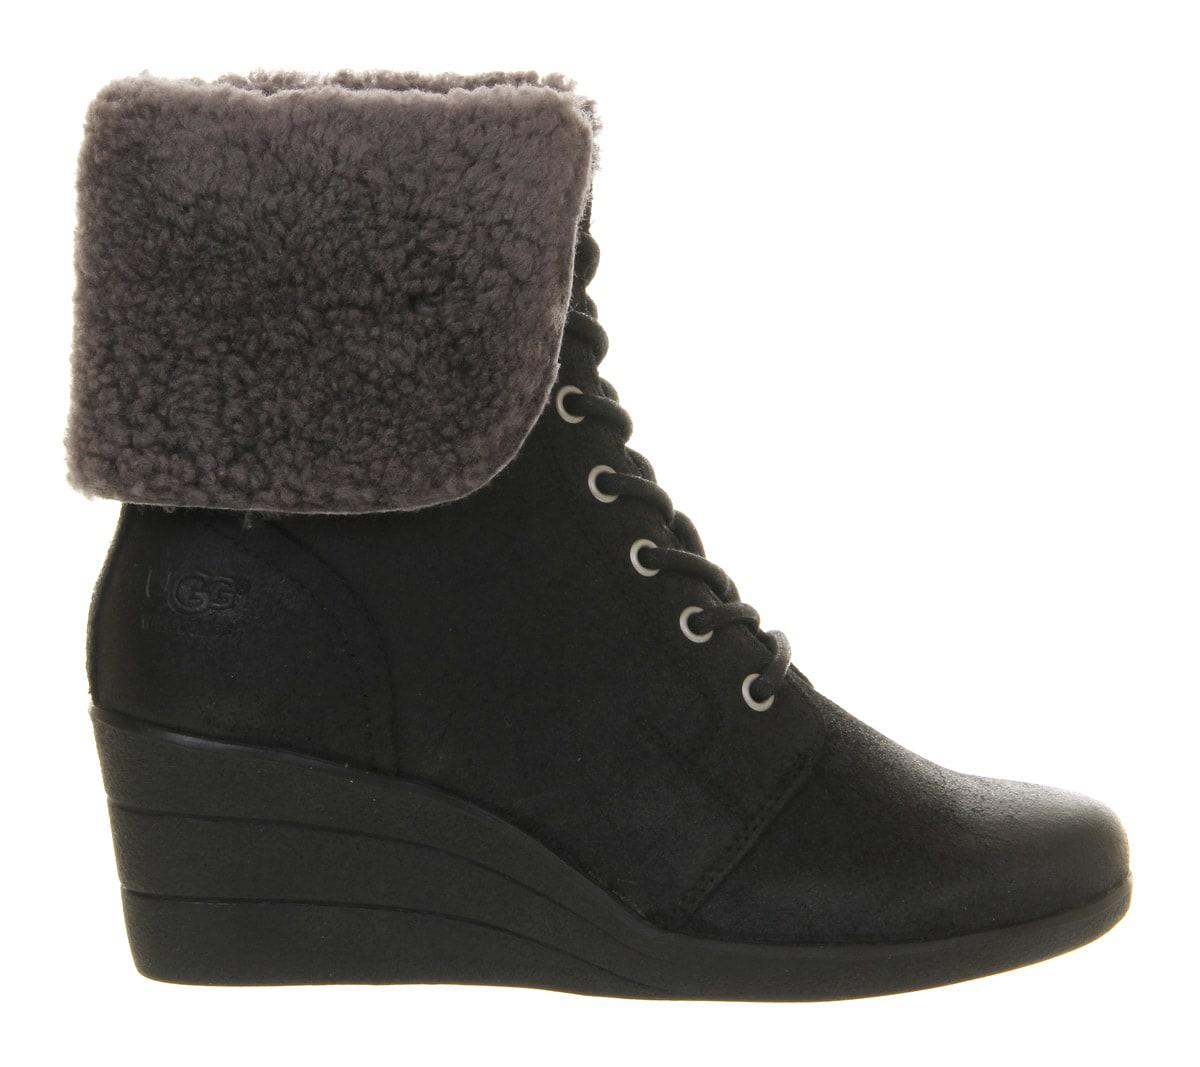 UGG Zea Shearling Wedge Lace Up Boots in Black